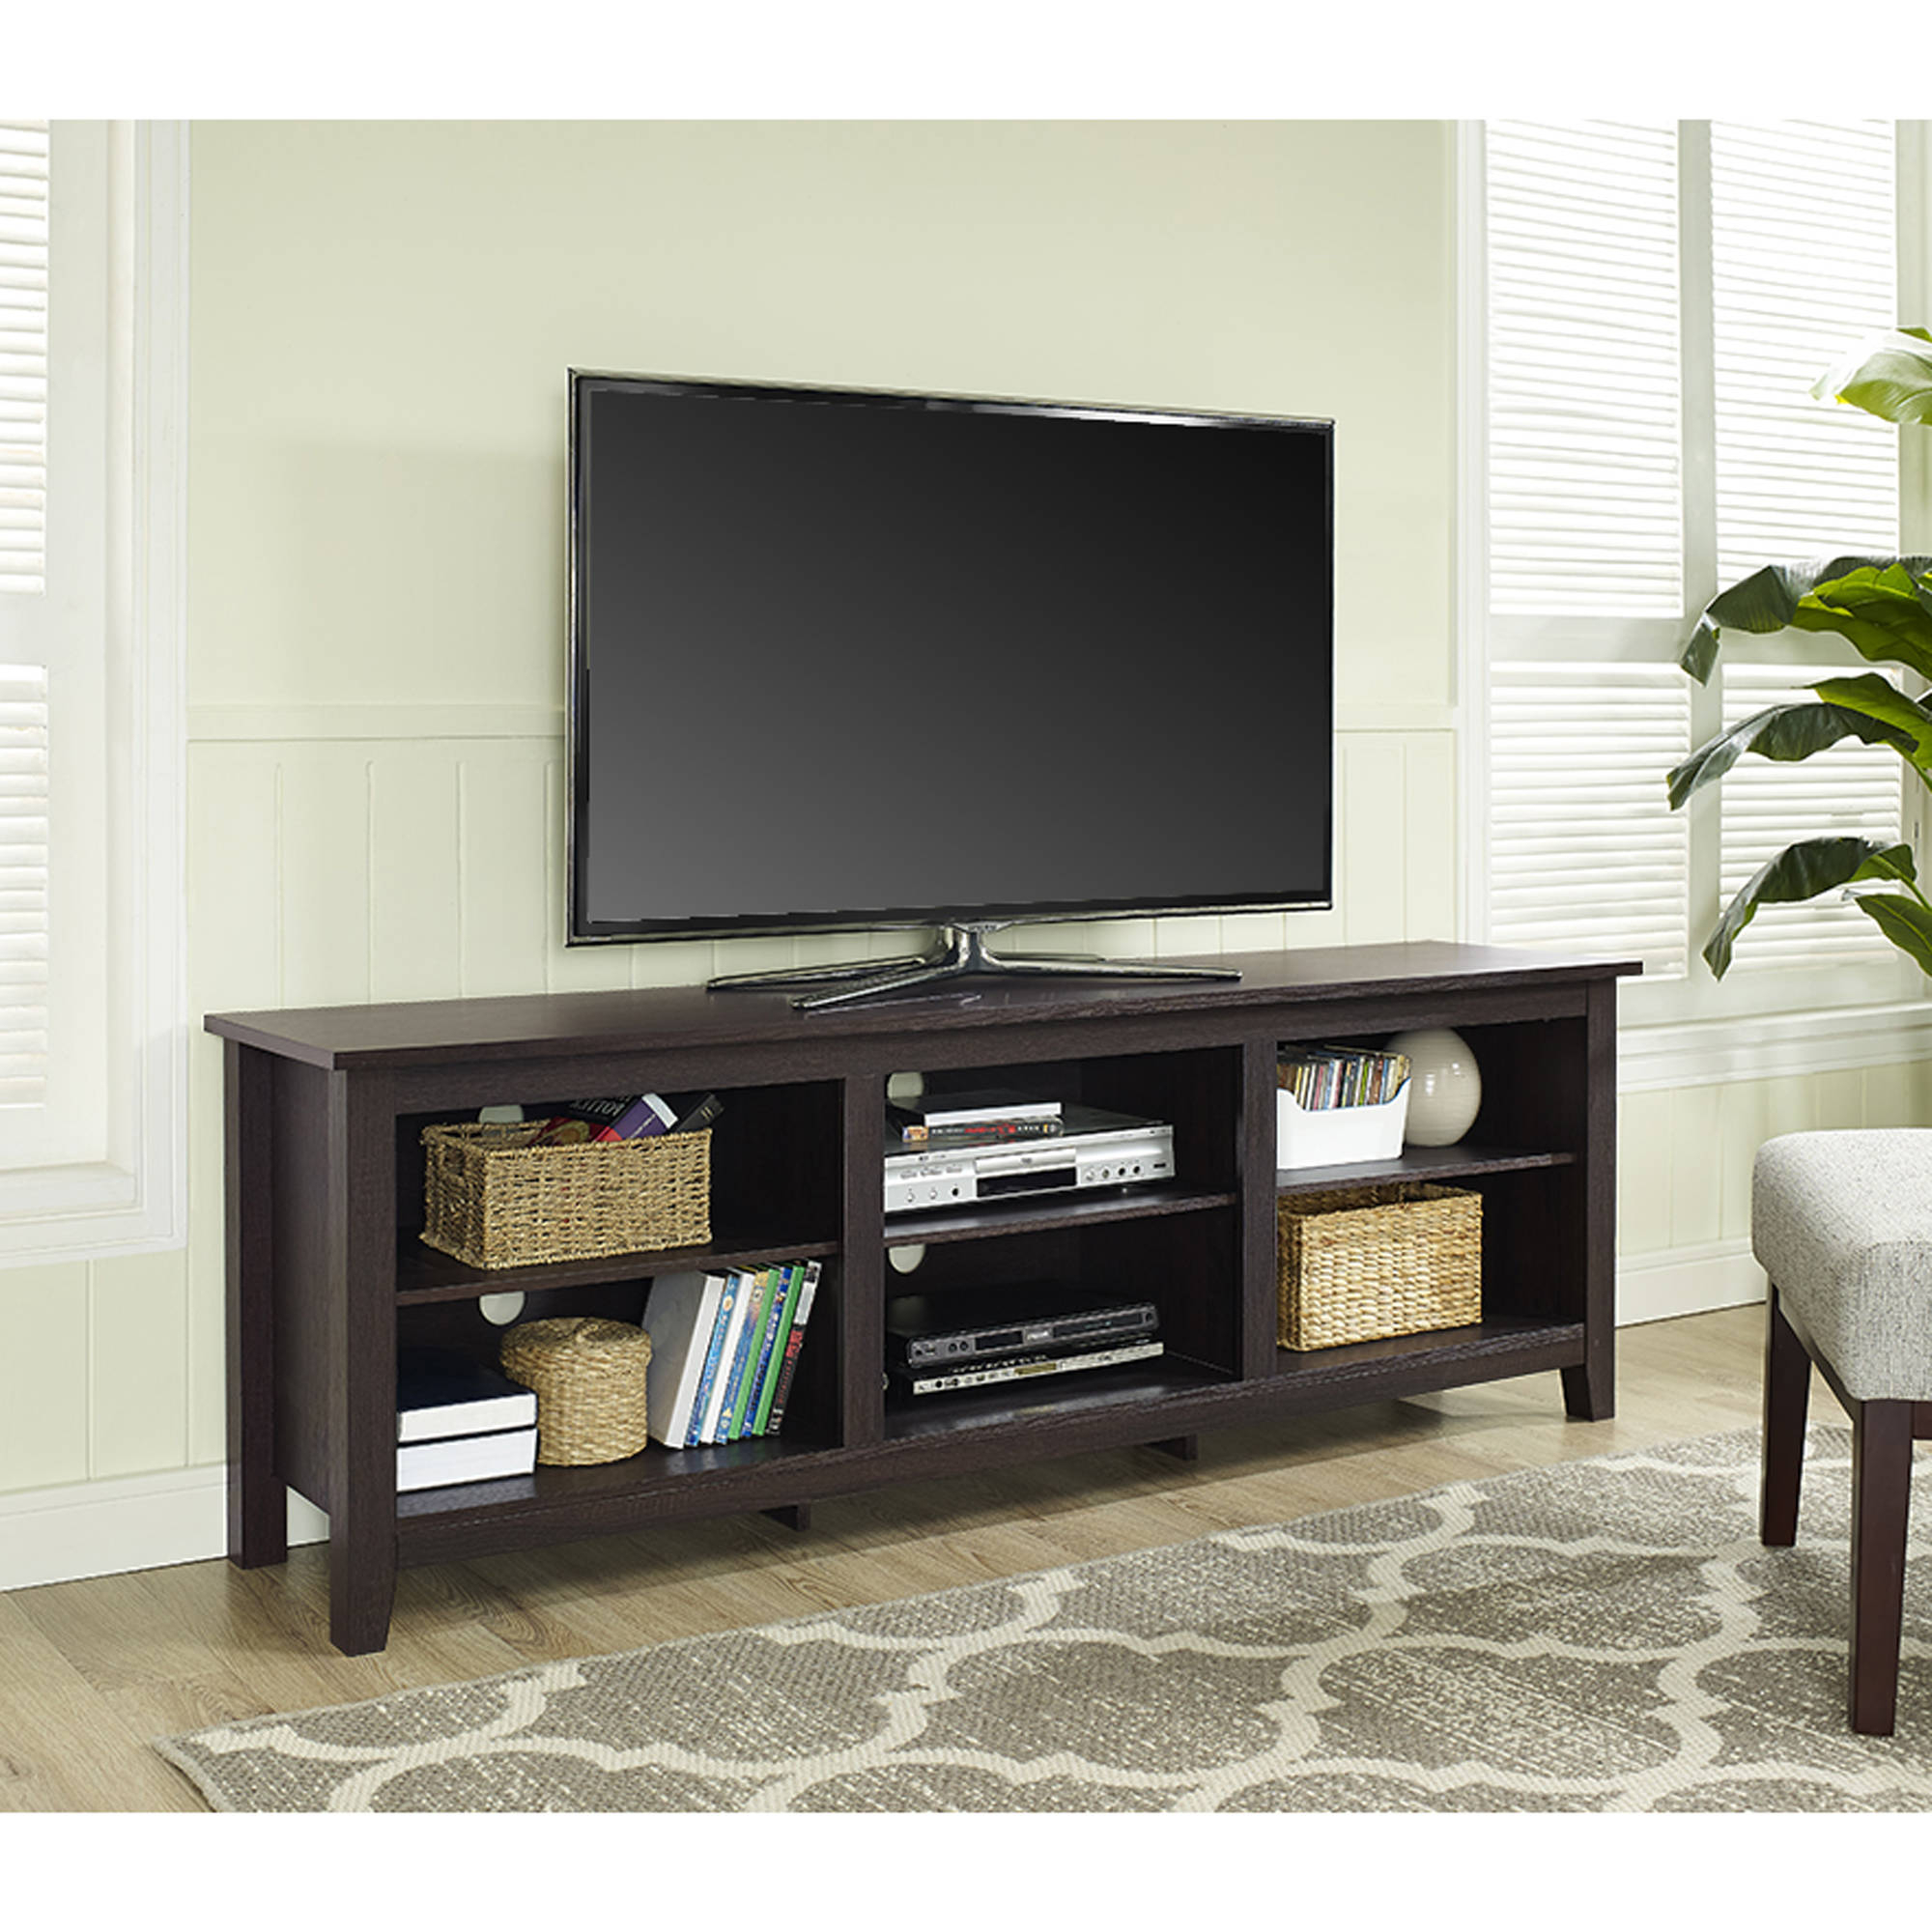 Popular Mainstays Payton View Tv Stand With 2 Bins For Tvs Up To 60 Within Tv Stands For Large Tvs (Gallery 2 of 20)